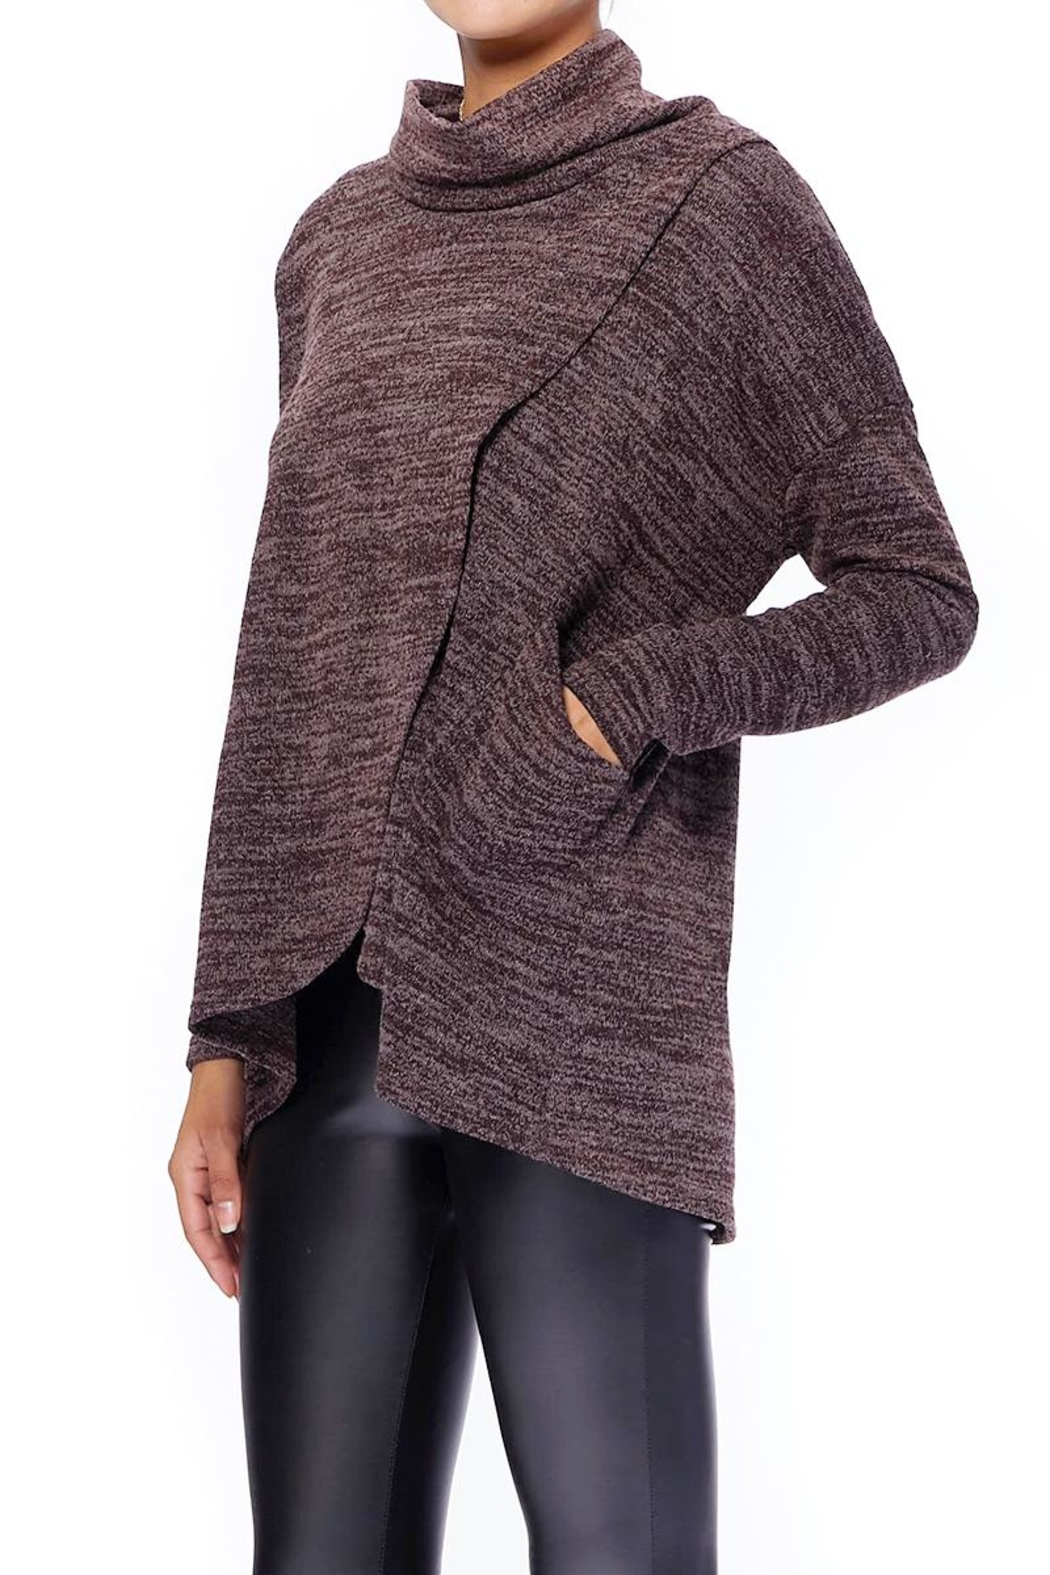 Aryeh Chocolate Cowl Neck Top - Side Cropped Image